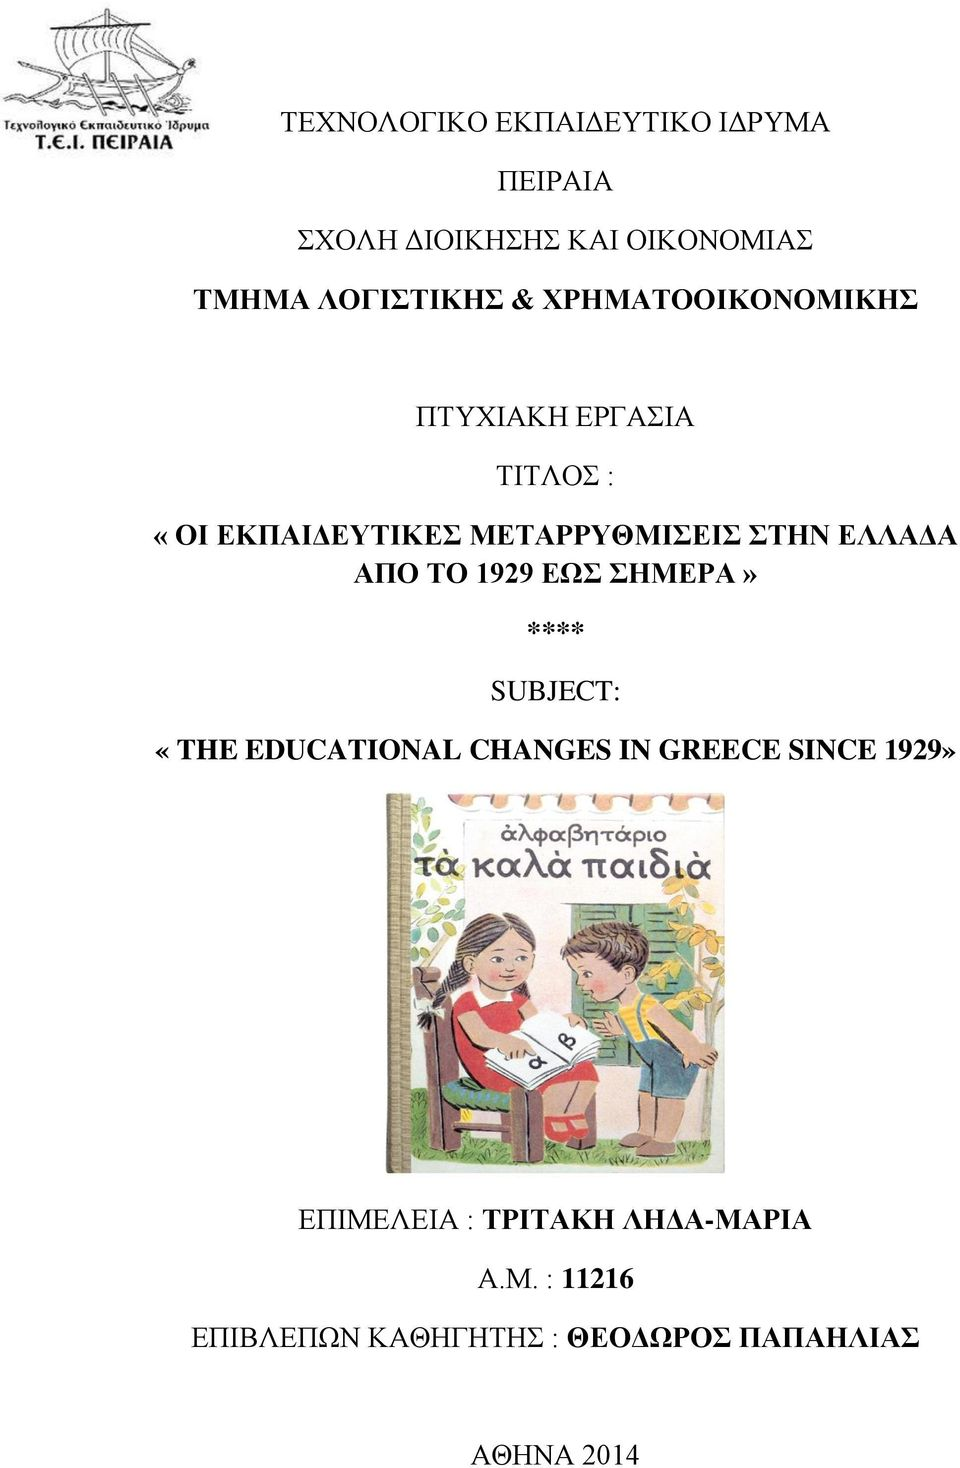 ΑΠΟ ΤΟ 1929 ΕΩΣ ΣΗΜΕΡΑ» **** SUBJECT: «THE EDUCATIONAL CHANGES IN GREECE SINCE 1929»